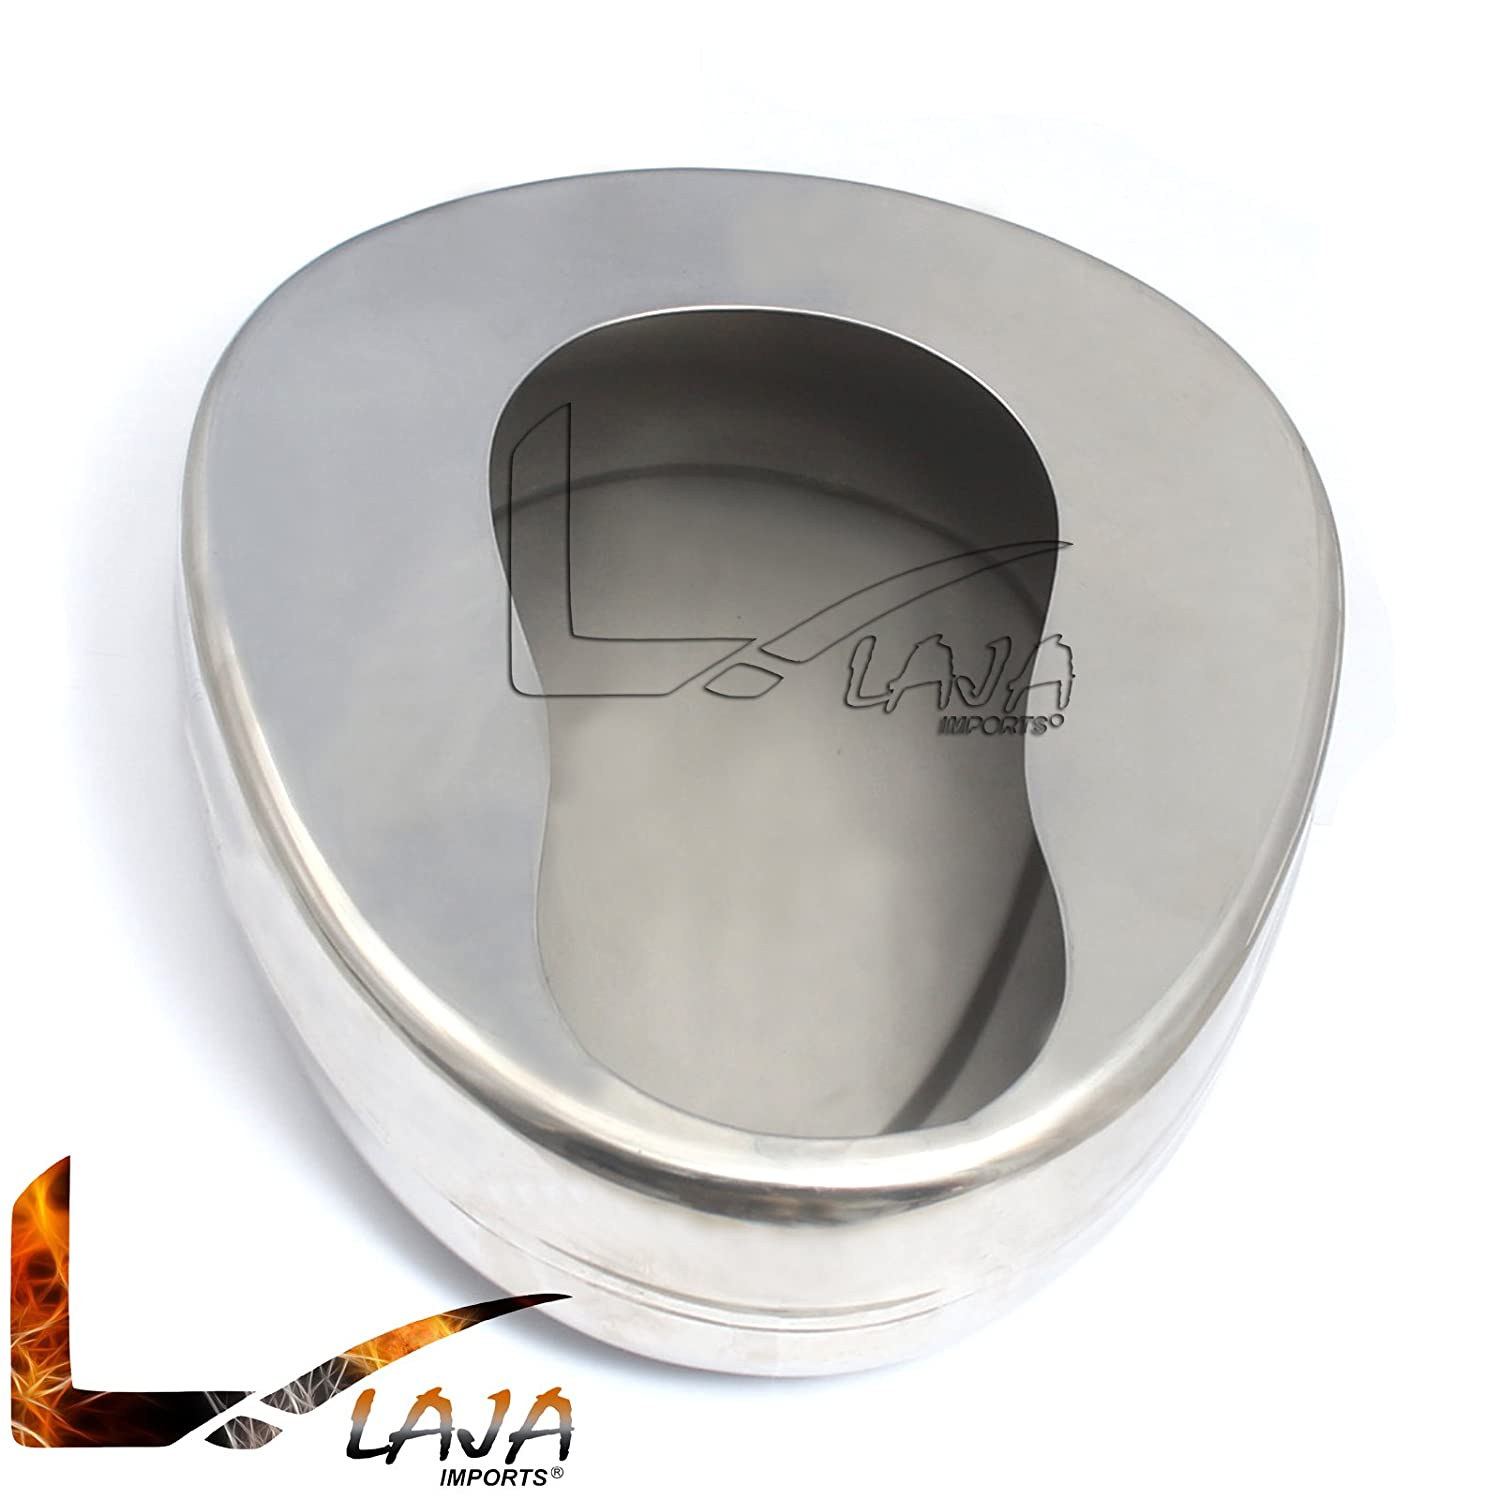 LAJA IMPORTS Stainless Steel Bed Pans, Adult, 14 X 11 3/8 Qty: 1